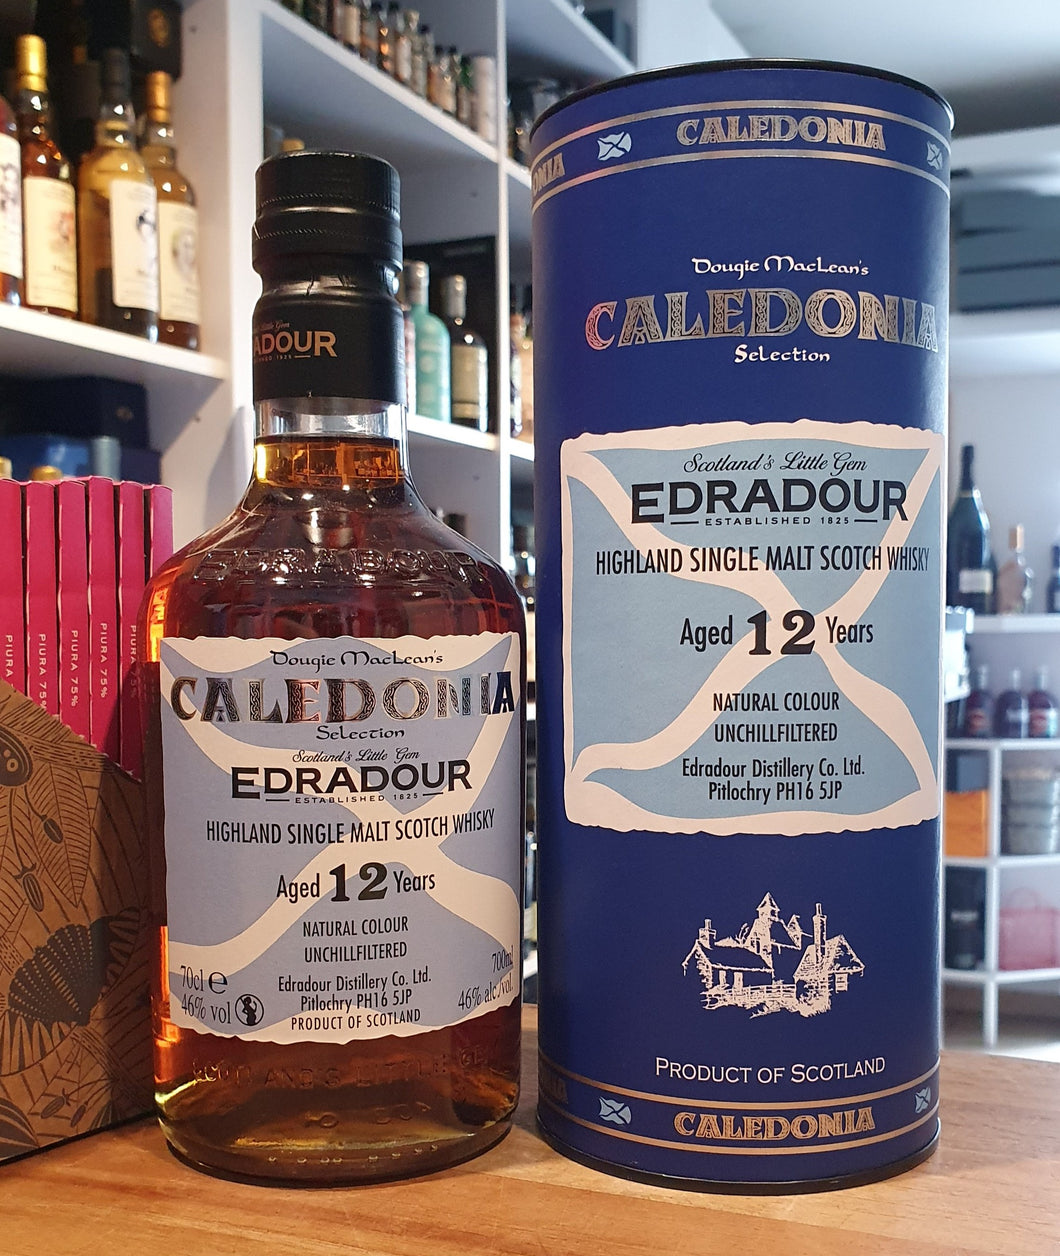 Edradour 12 Selection Caledonia Highland single malt scotch whisky 0,7l Fl 46%vol. Dougie Macleans unchillfiltered ,natural Color in Geschenkdose